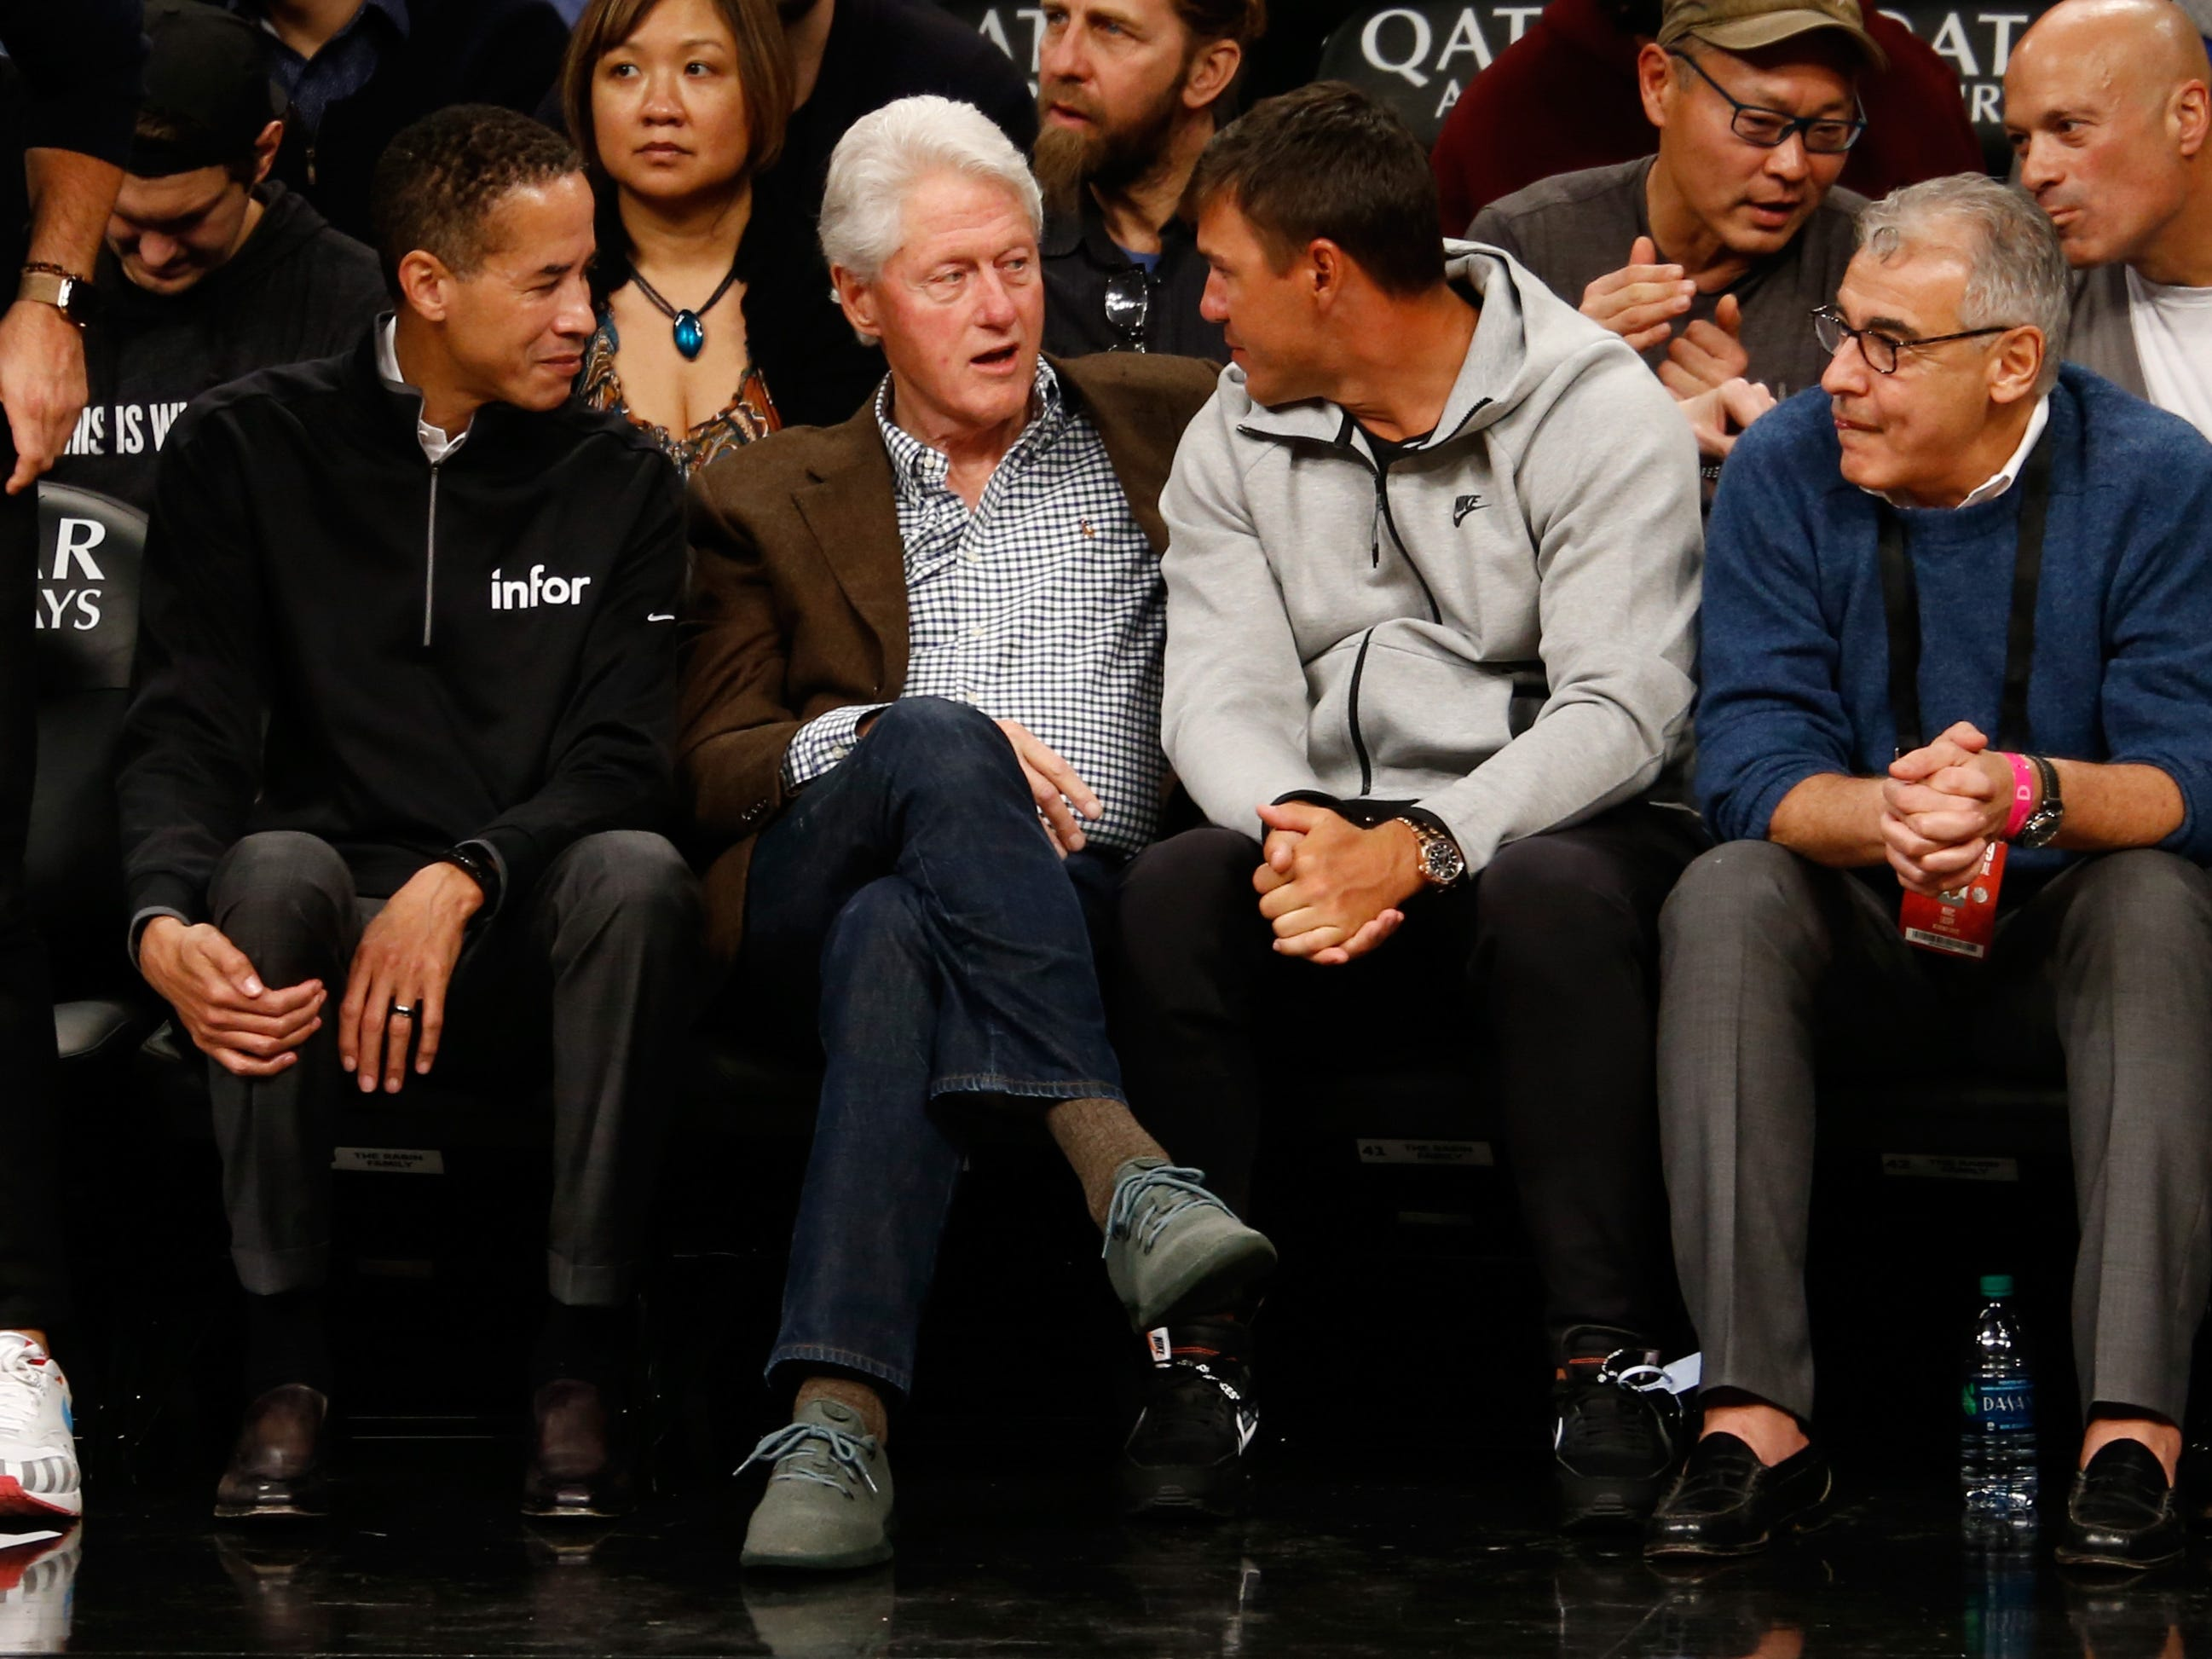 Charles Phillips (from left), CEO of Infor; former president Bill Clinton; reigning PGA Championship winner and two-time U.S. Open champ Brooks Koepka; and Marc Lasry, one of the Bucks principal owners, take in Milwaukee game against the Nets on Monday night at Barclays Center in Brooklyn, N.Y.